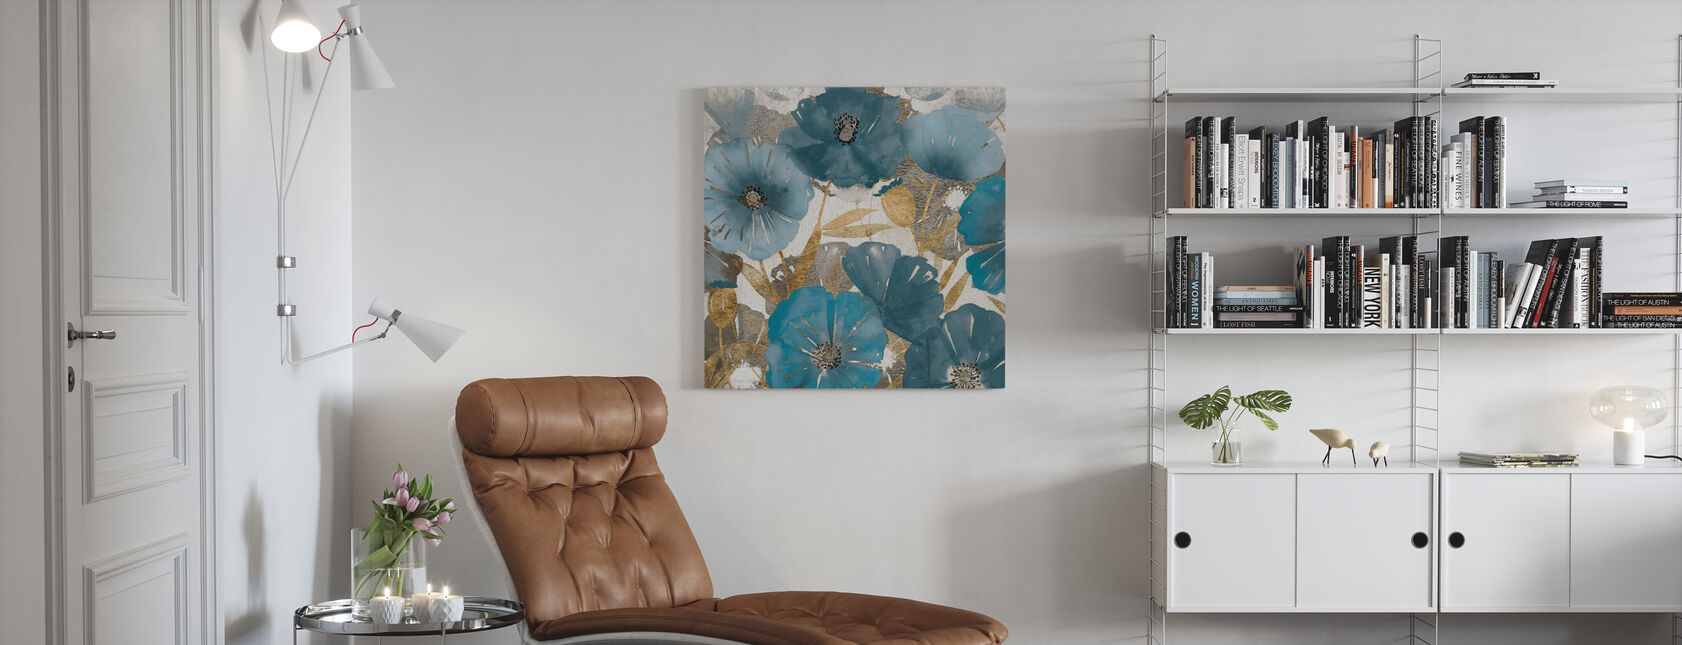 Blue and Gold Poppies - Canvas print - Living Room